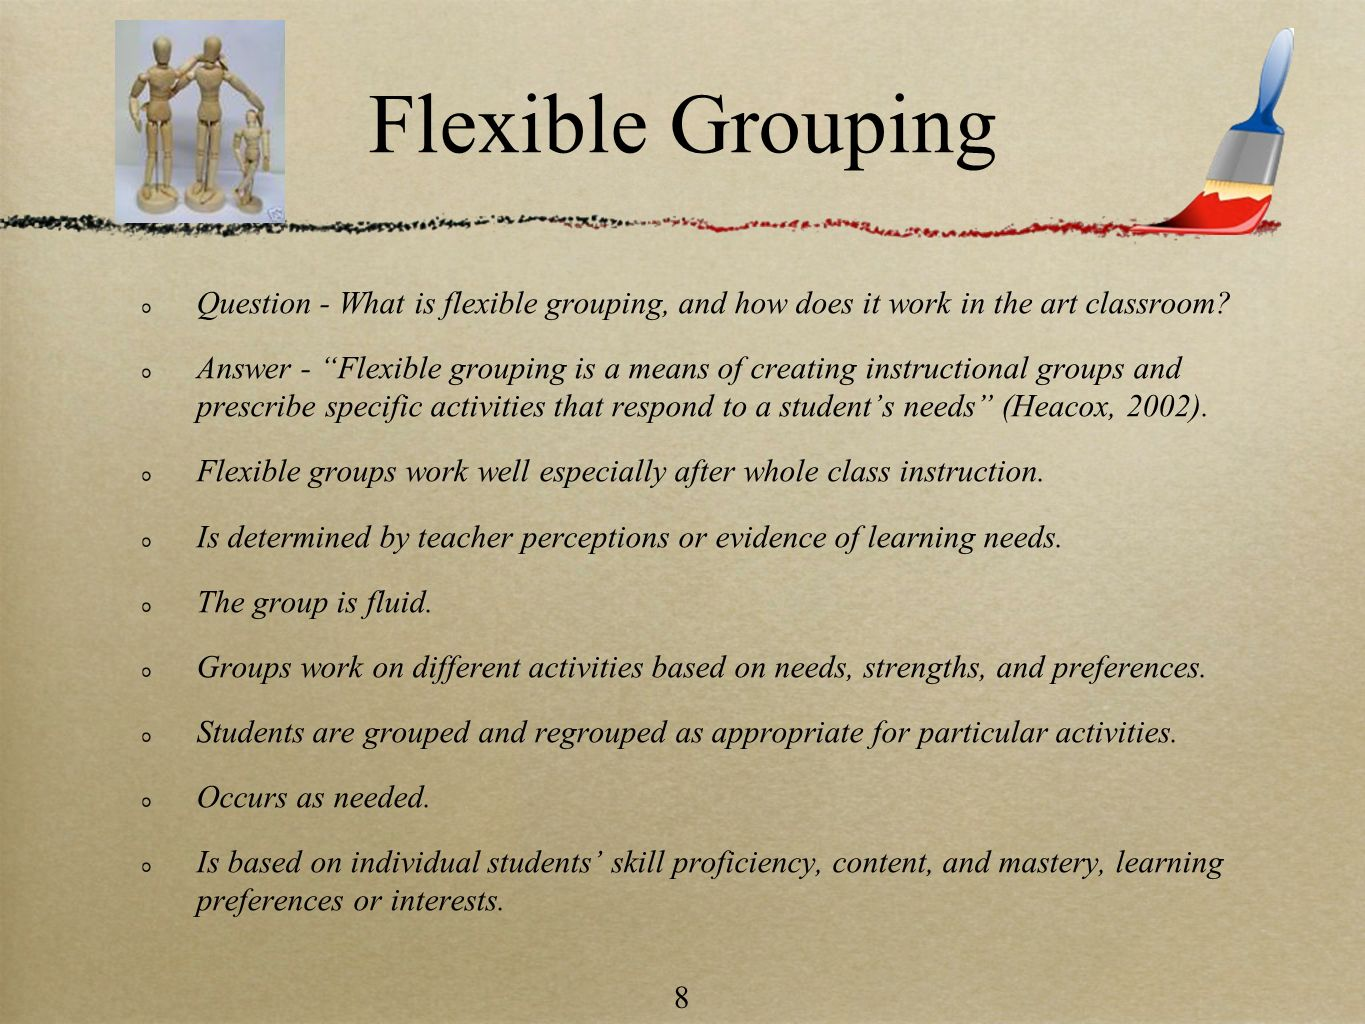 Flexible Grouping Question - What is flexible grouping, and how does it work in the art classroom